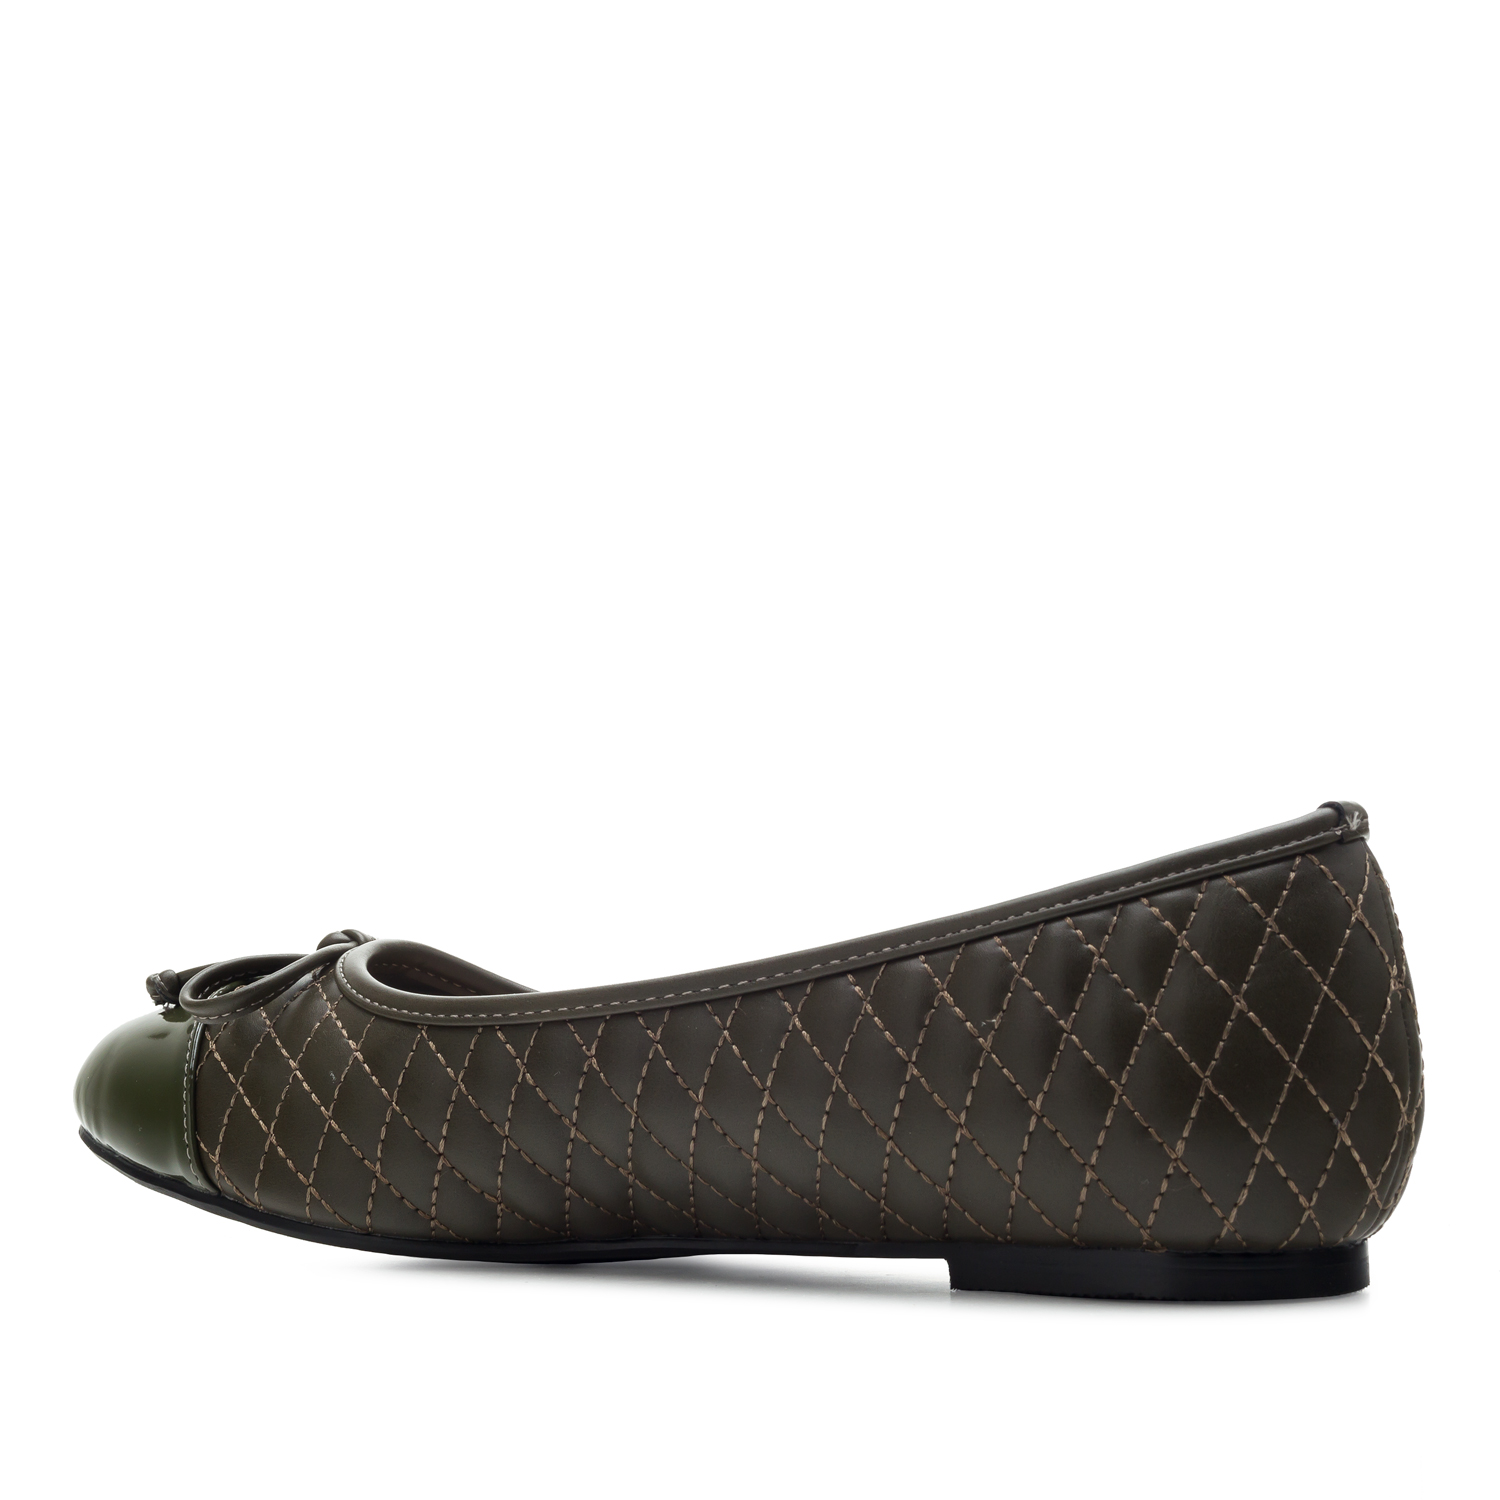 Ballet Flats in Olive Green faux Leather